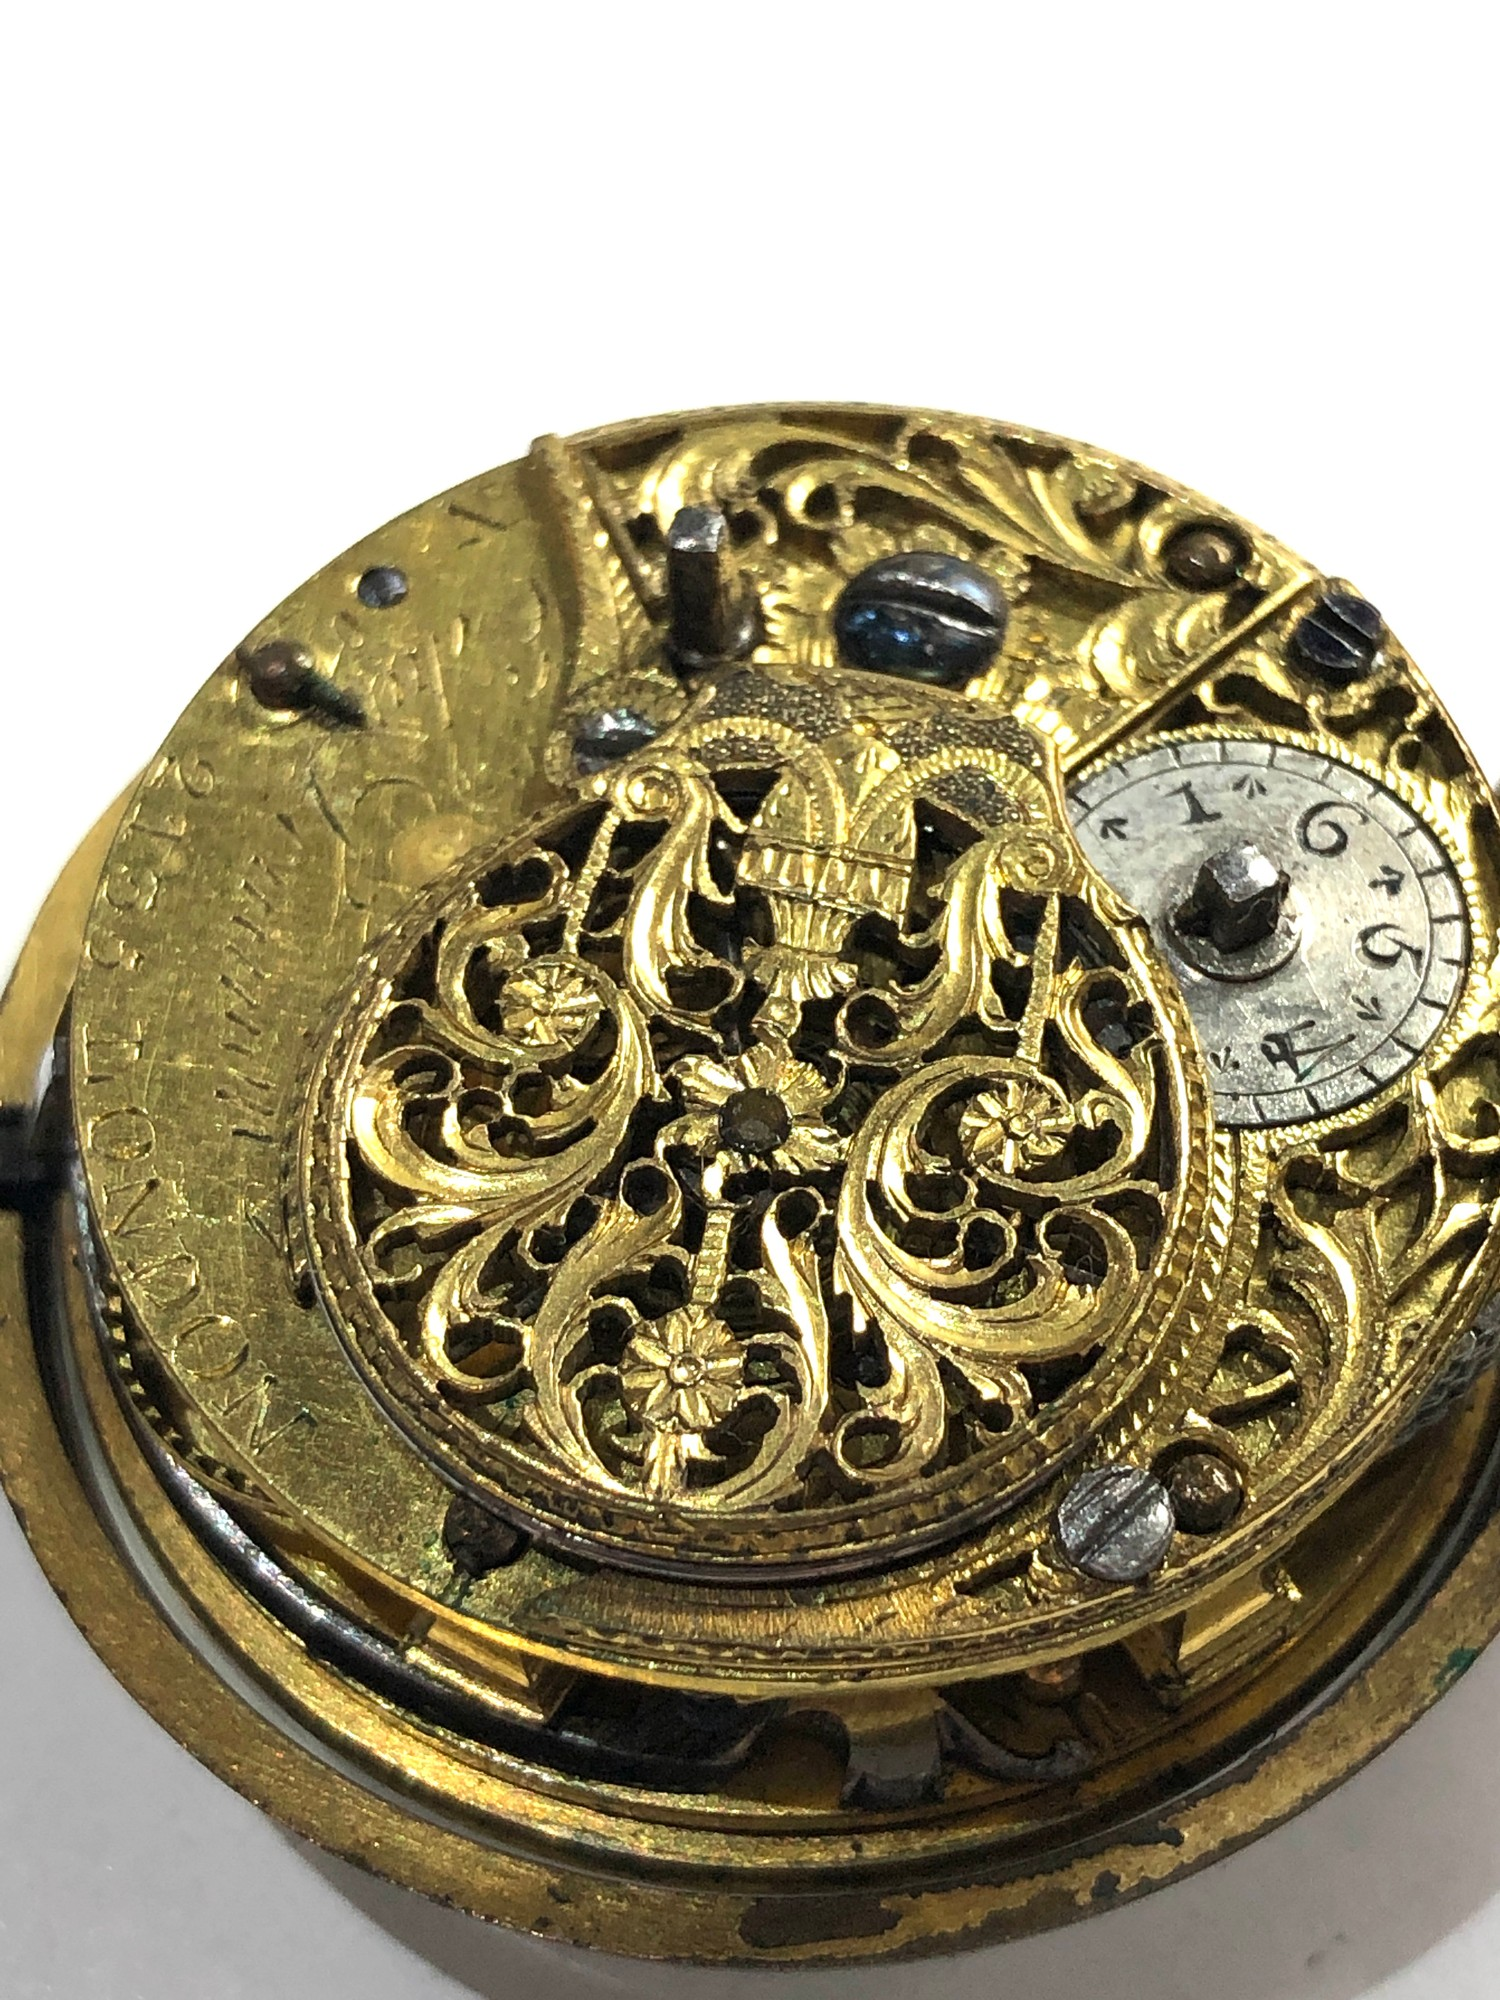 18th century London paircase verge pocket watch the watch does wind and tick dial damaged outer case - Image 5 of 9